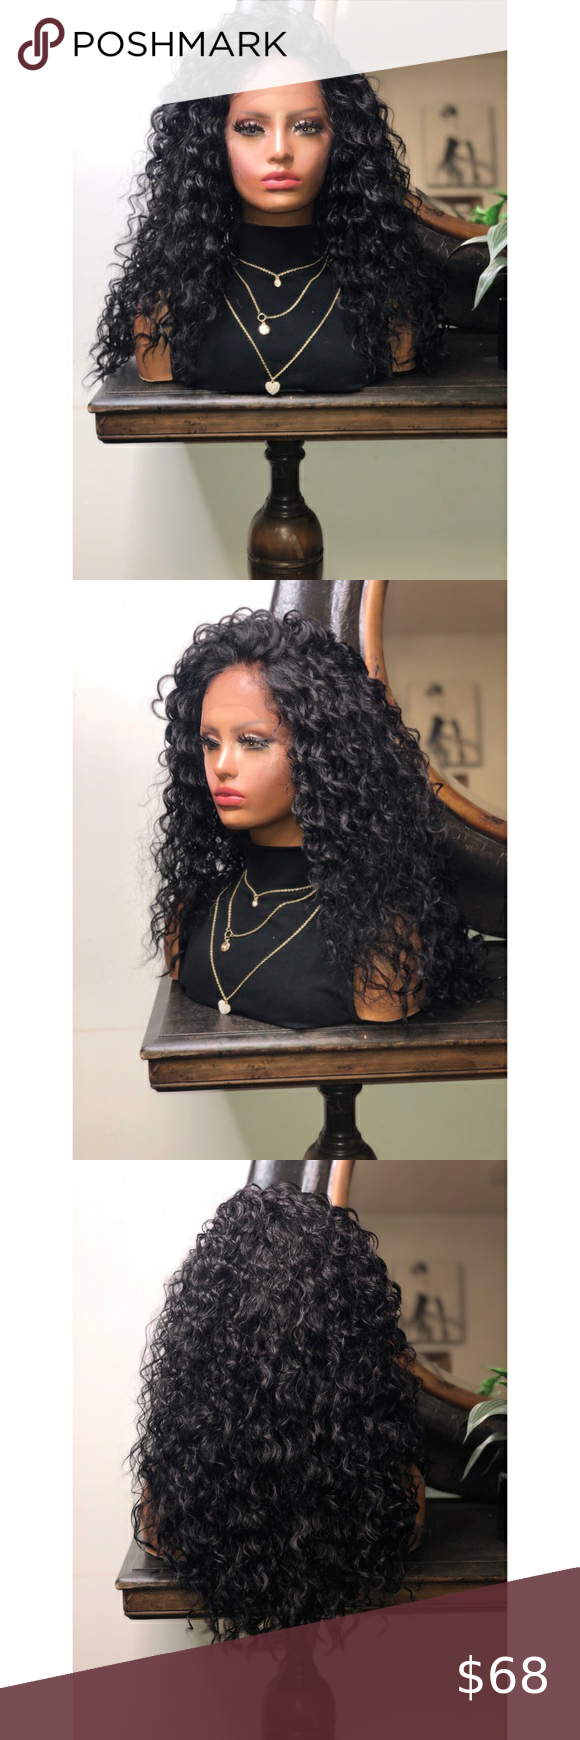 Asia Long Black Curly Hair Lace Front Wig In 2020 Lace Front Wigs Curly Hair Styles Black Curly Hair